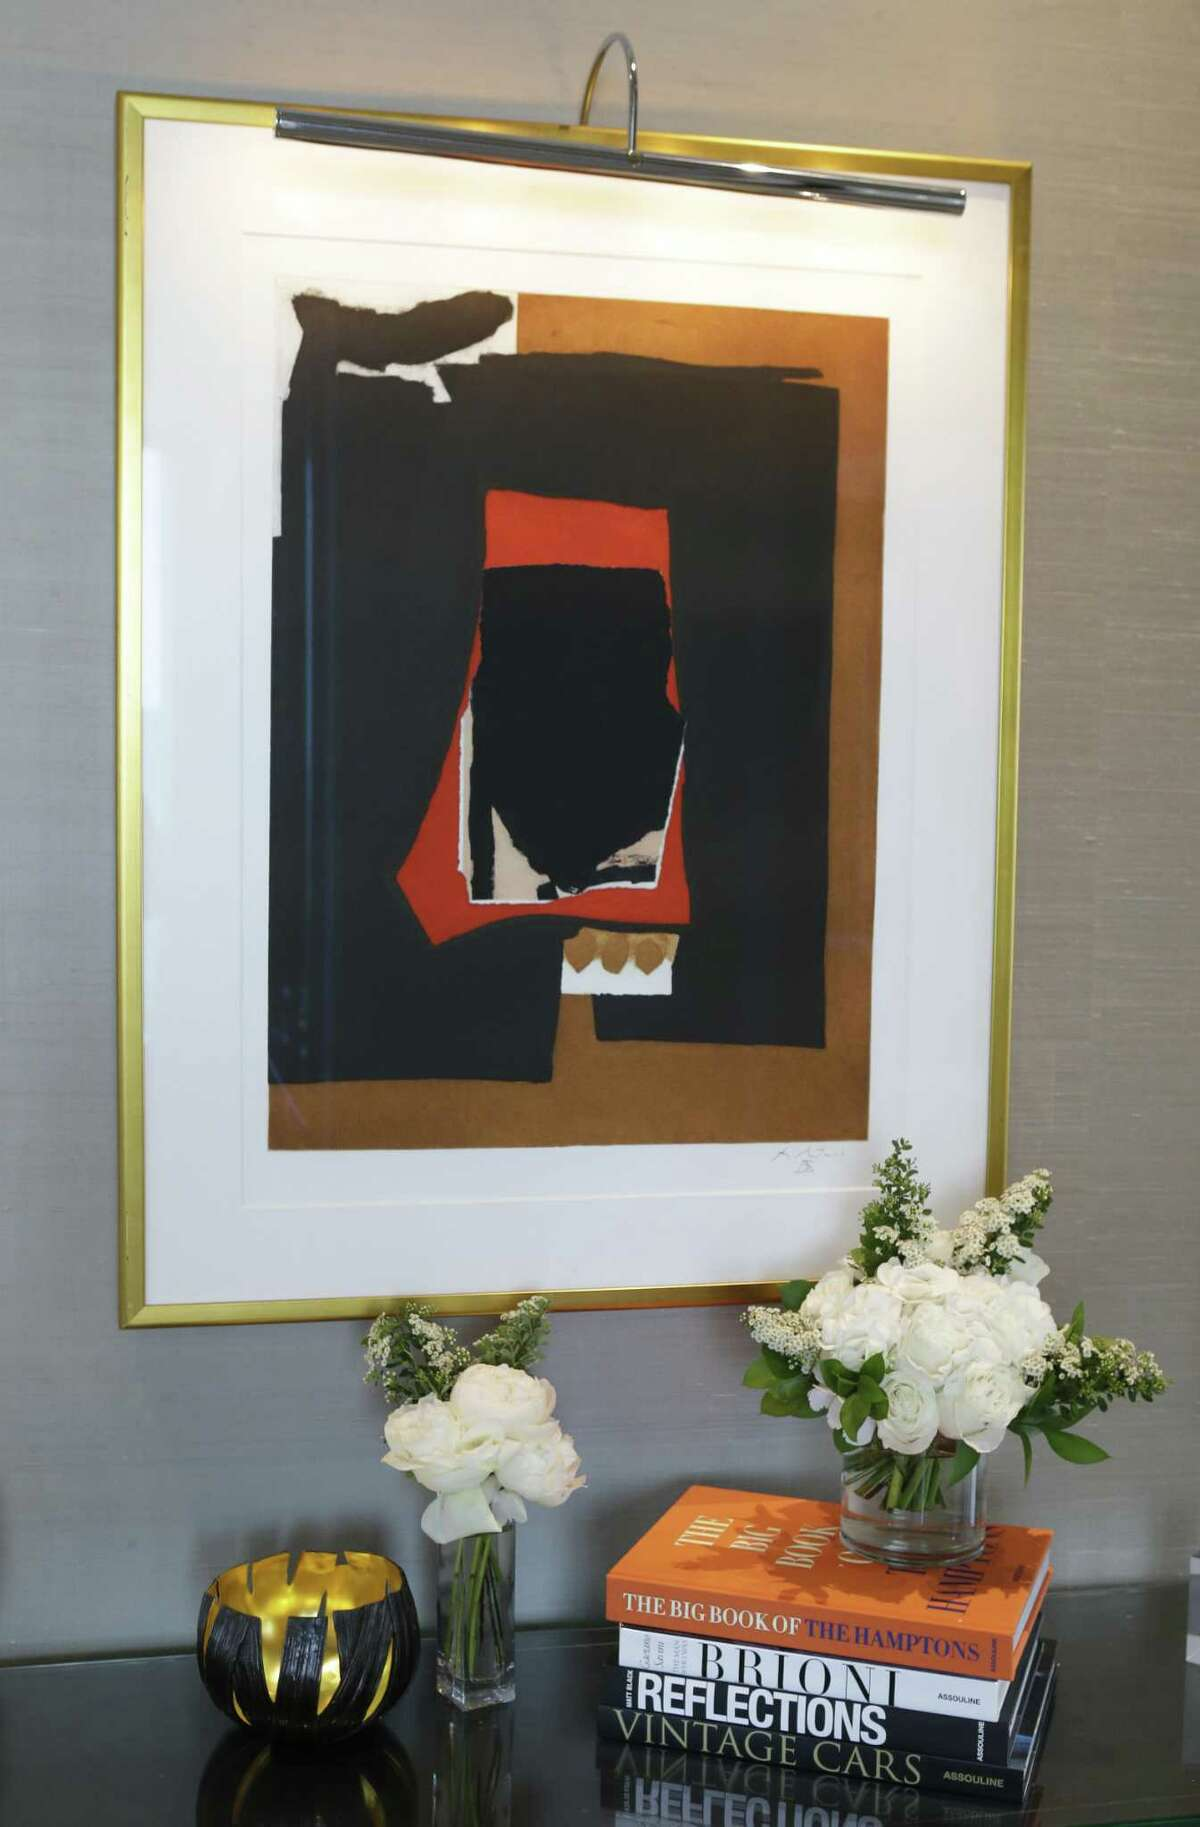 Tilman Fertitta filled his new hotel with museum-quality original art. The Presidential Suite has two pieces by 20th century abstract expressionist Robert Motherwell.